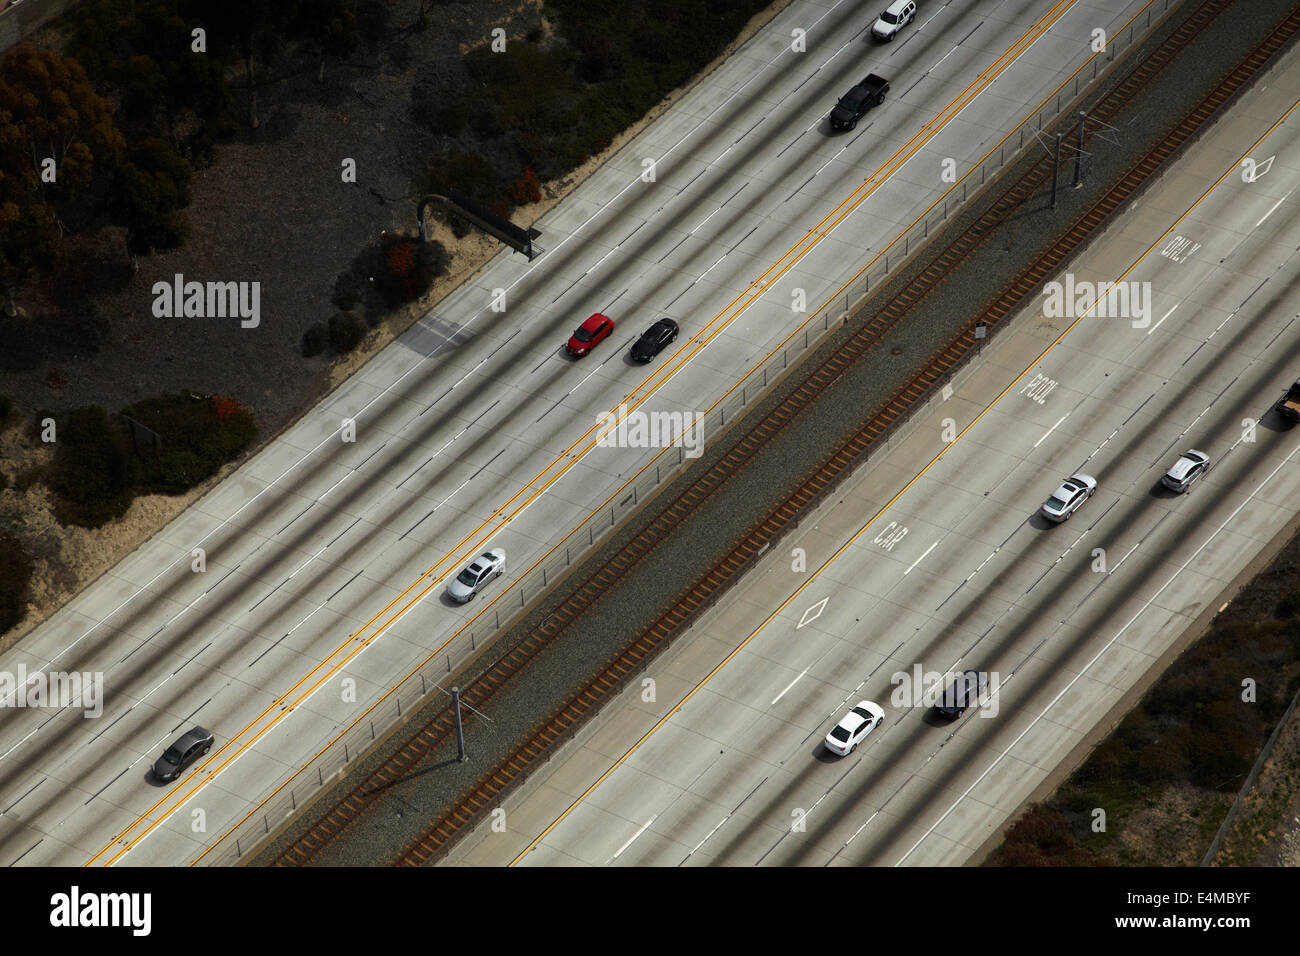 Interstate 105 or I-105, aka Glenn Anderson Freeway and Century Freeway, Holly Park, Los Angeles, California, USA - Stock Image